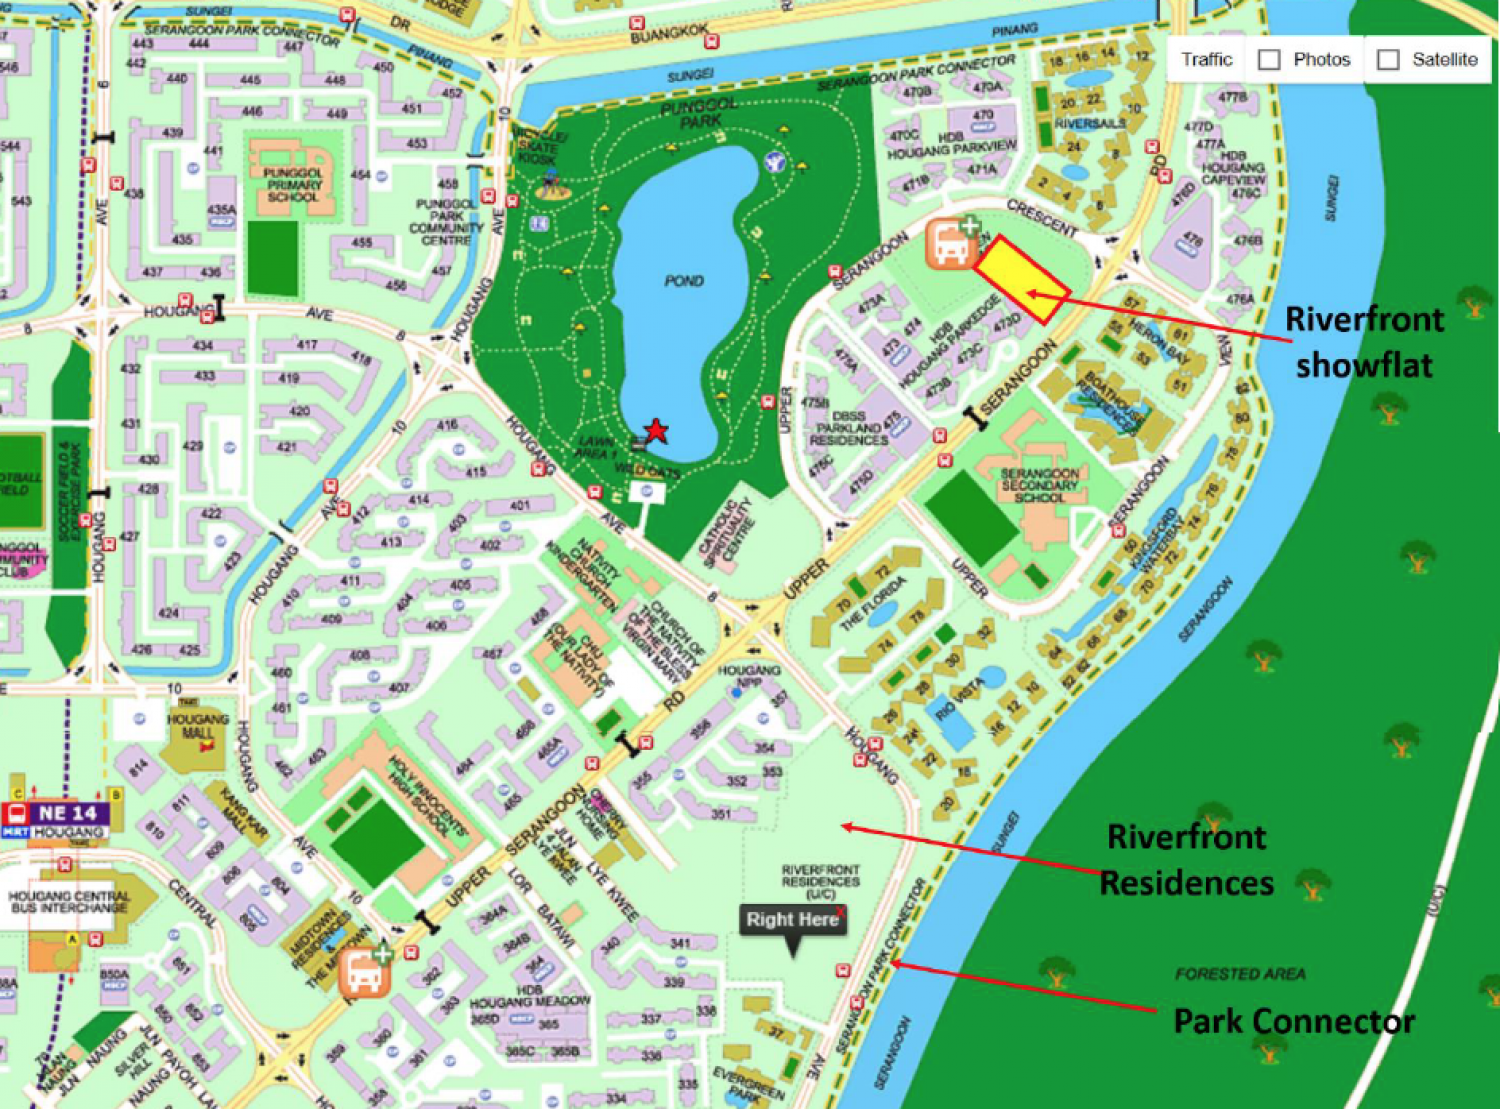 Riverfront Residences Map